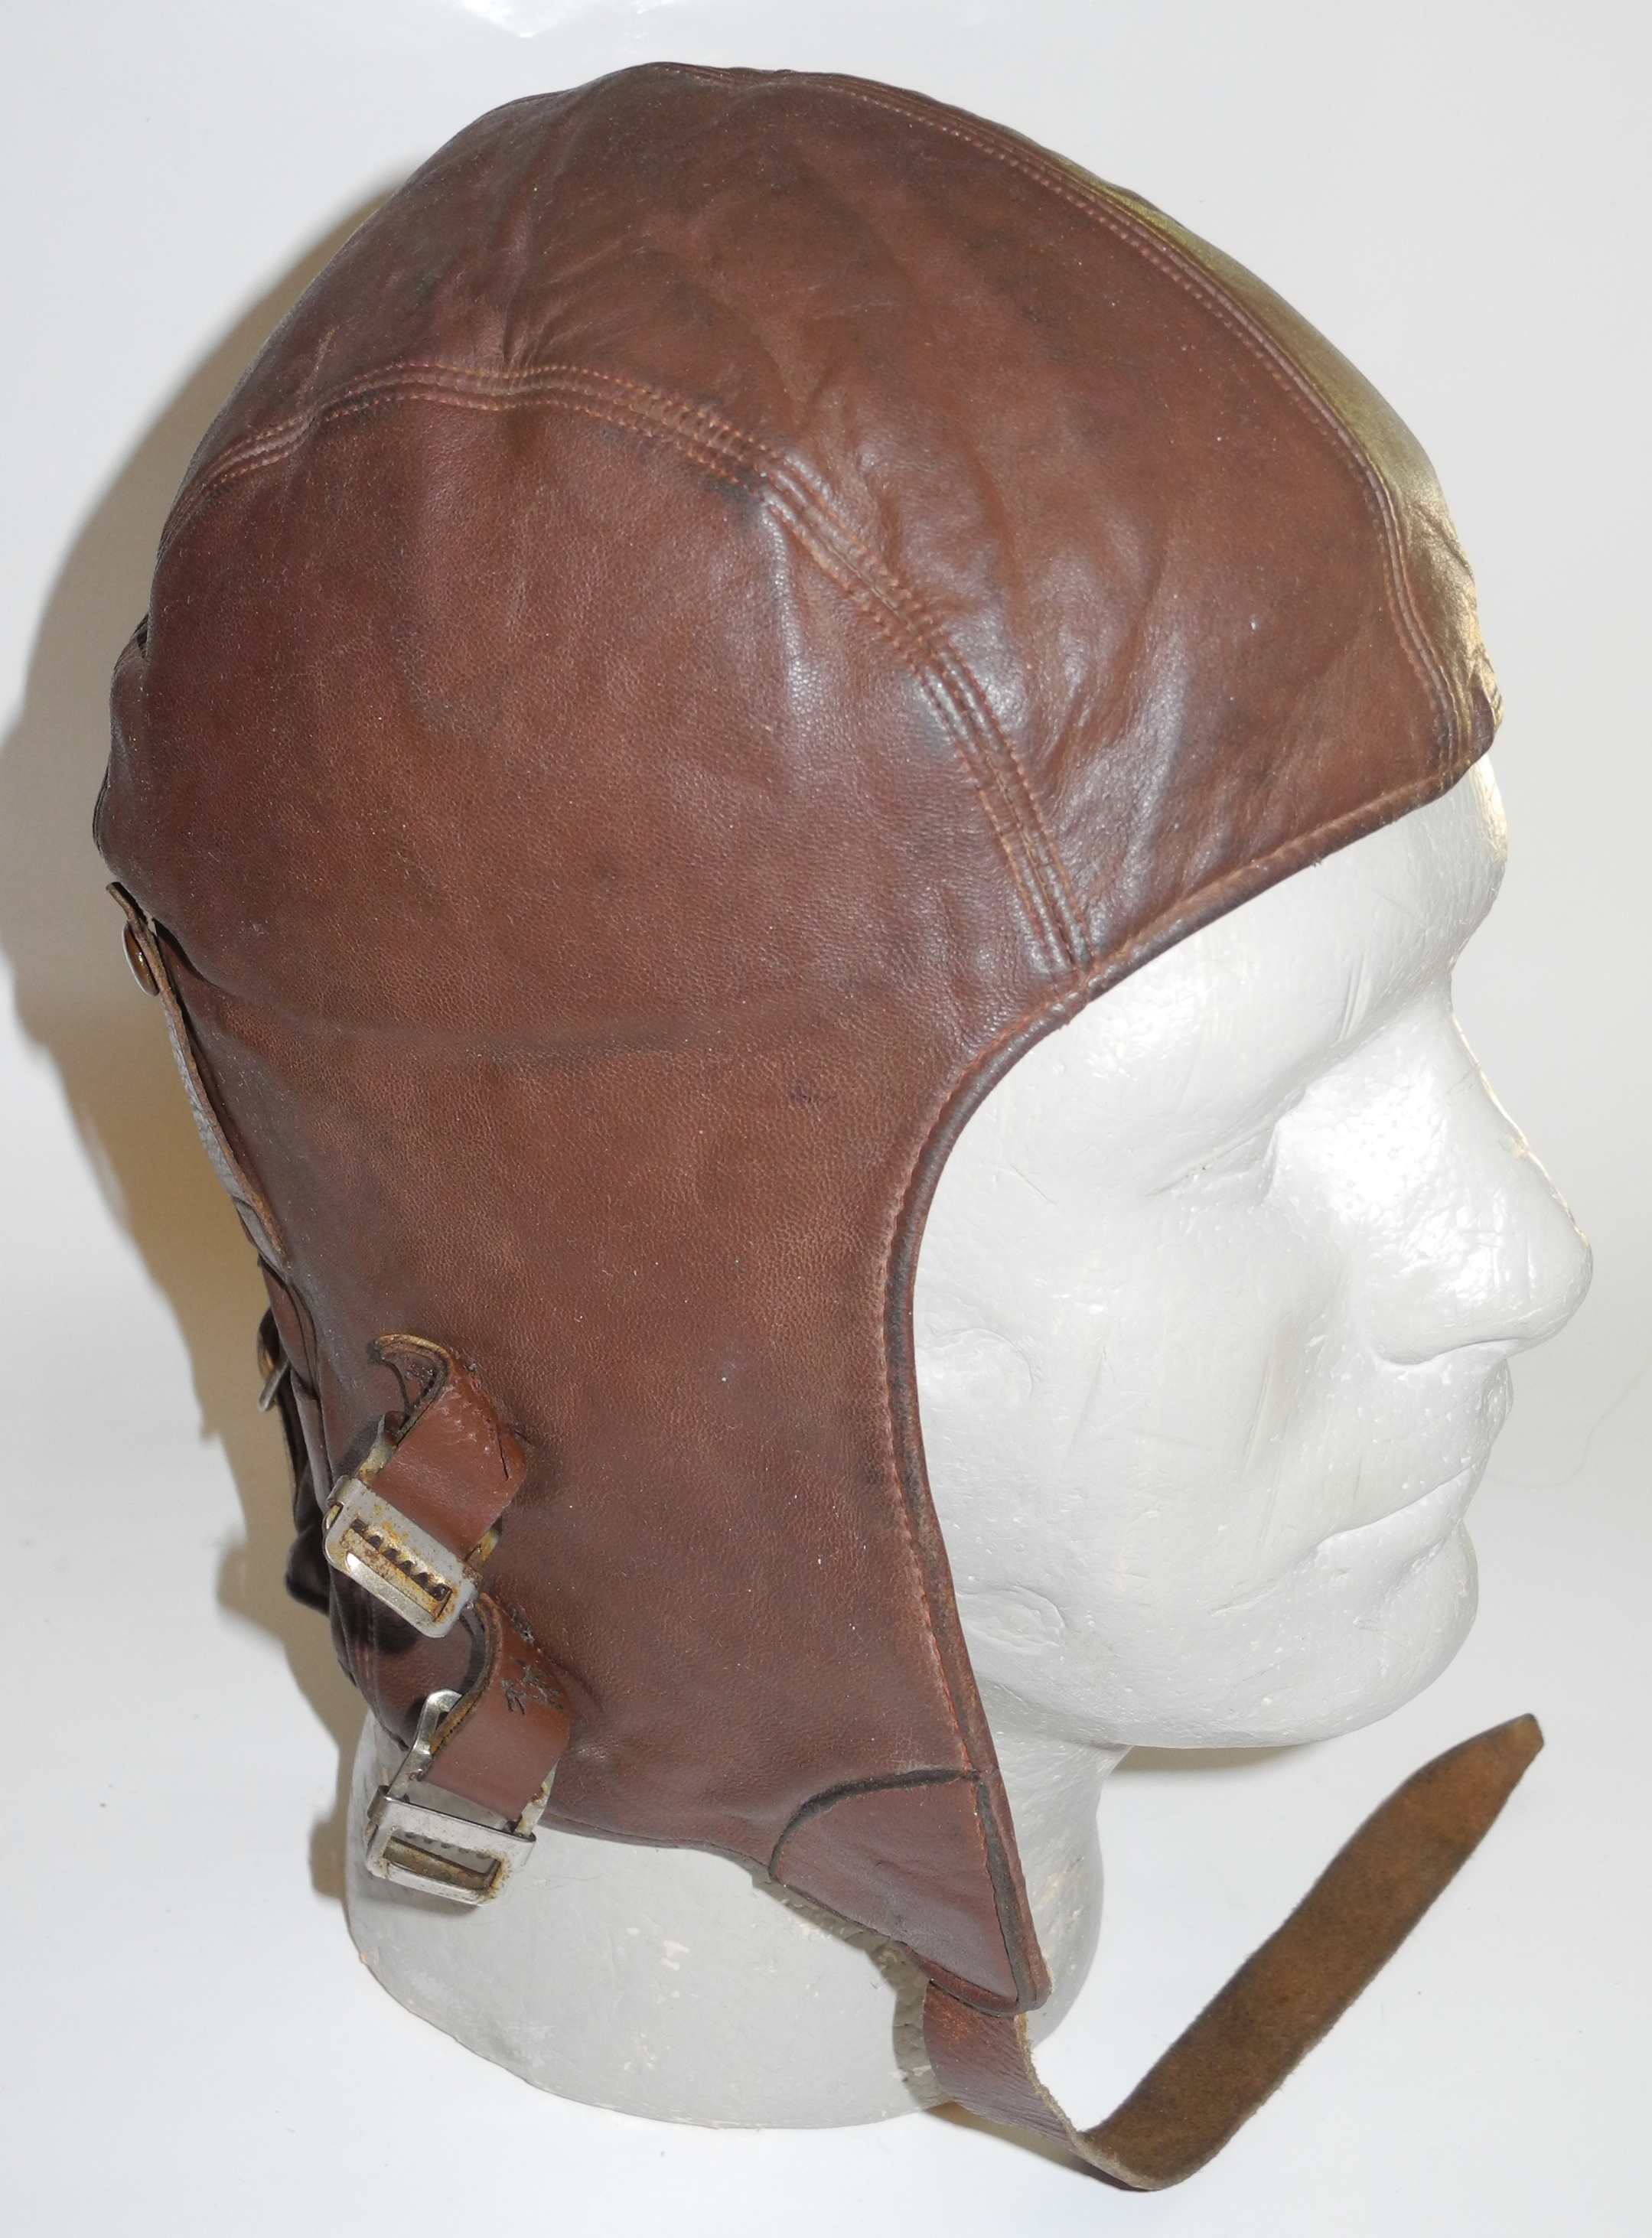 RCAF Type B helmet with modified buckles